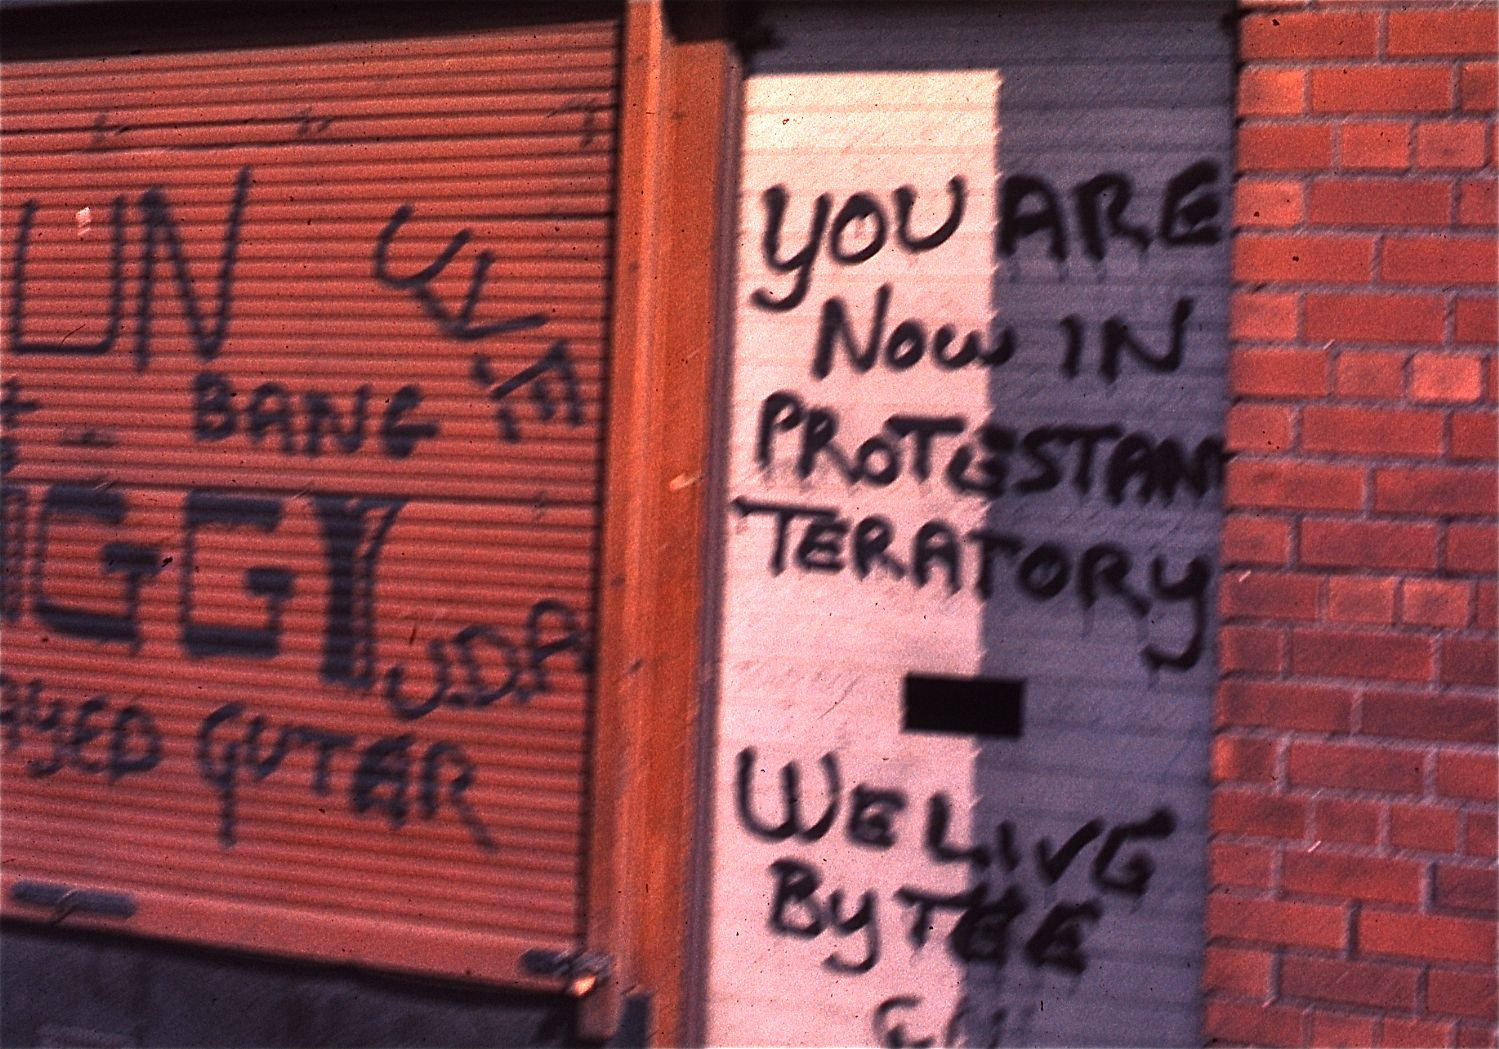 conflict in northern ireland A comprehensive educational site about the troubles in northern ireland between 1968 and 1998 contains topic pages, images, documents, activities and more.